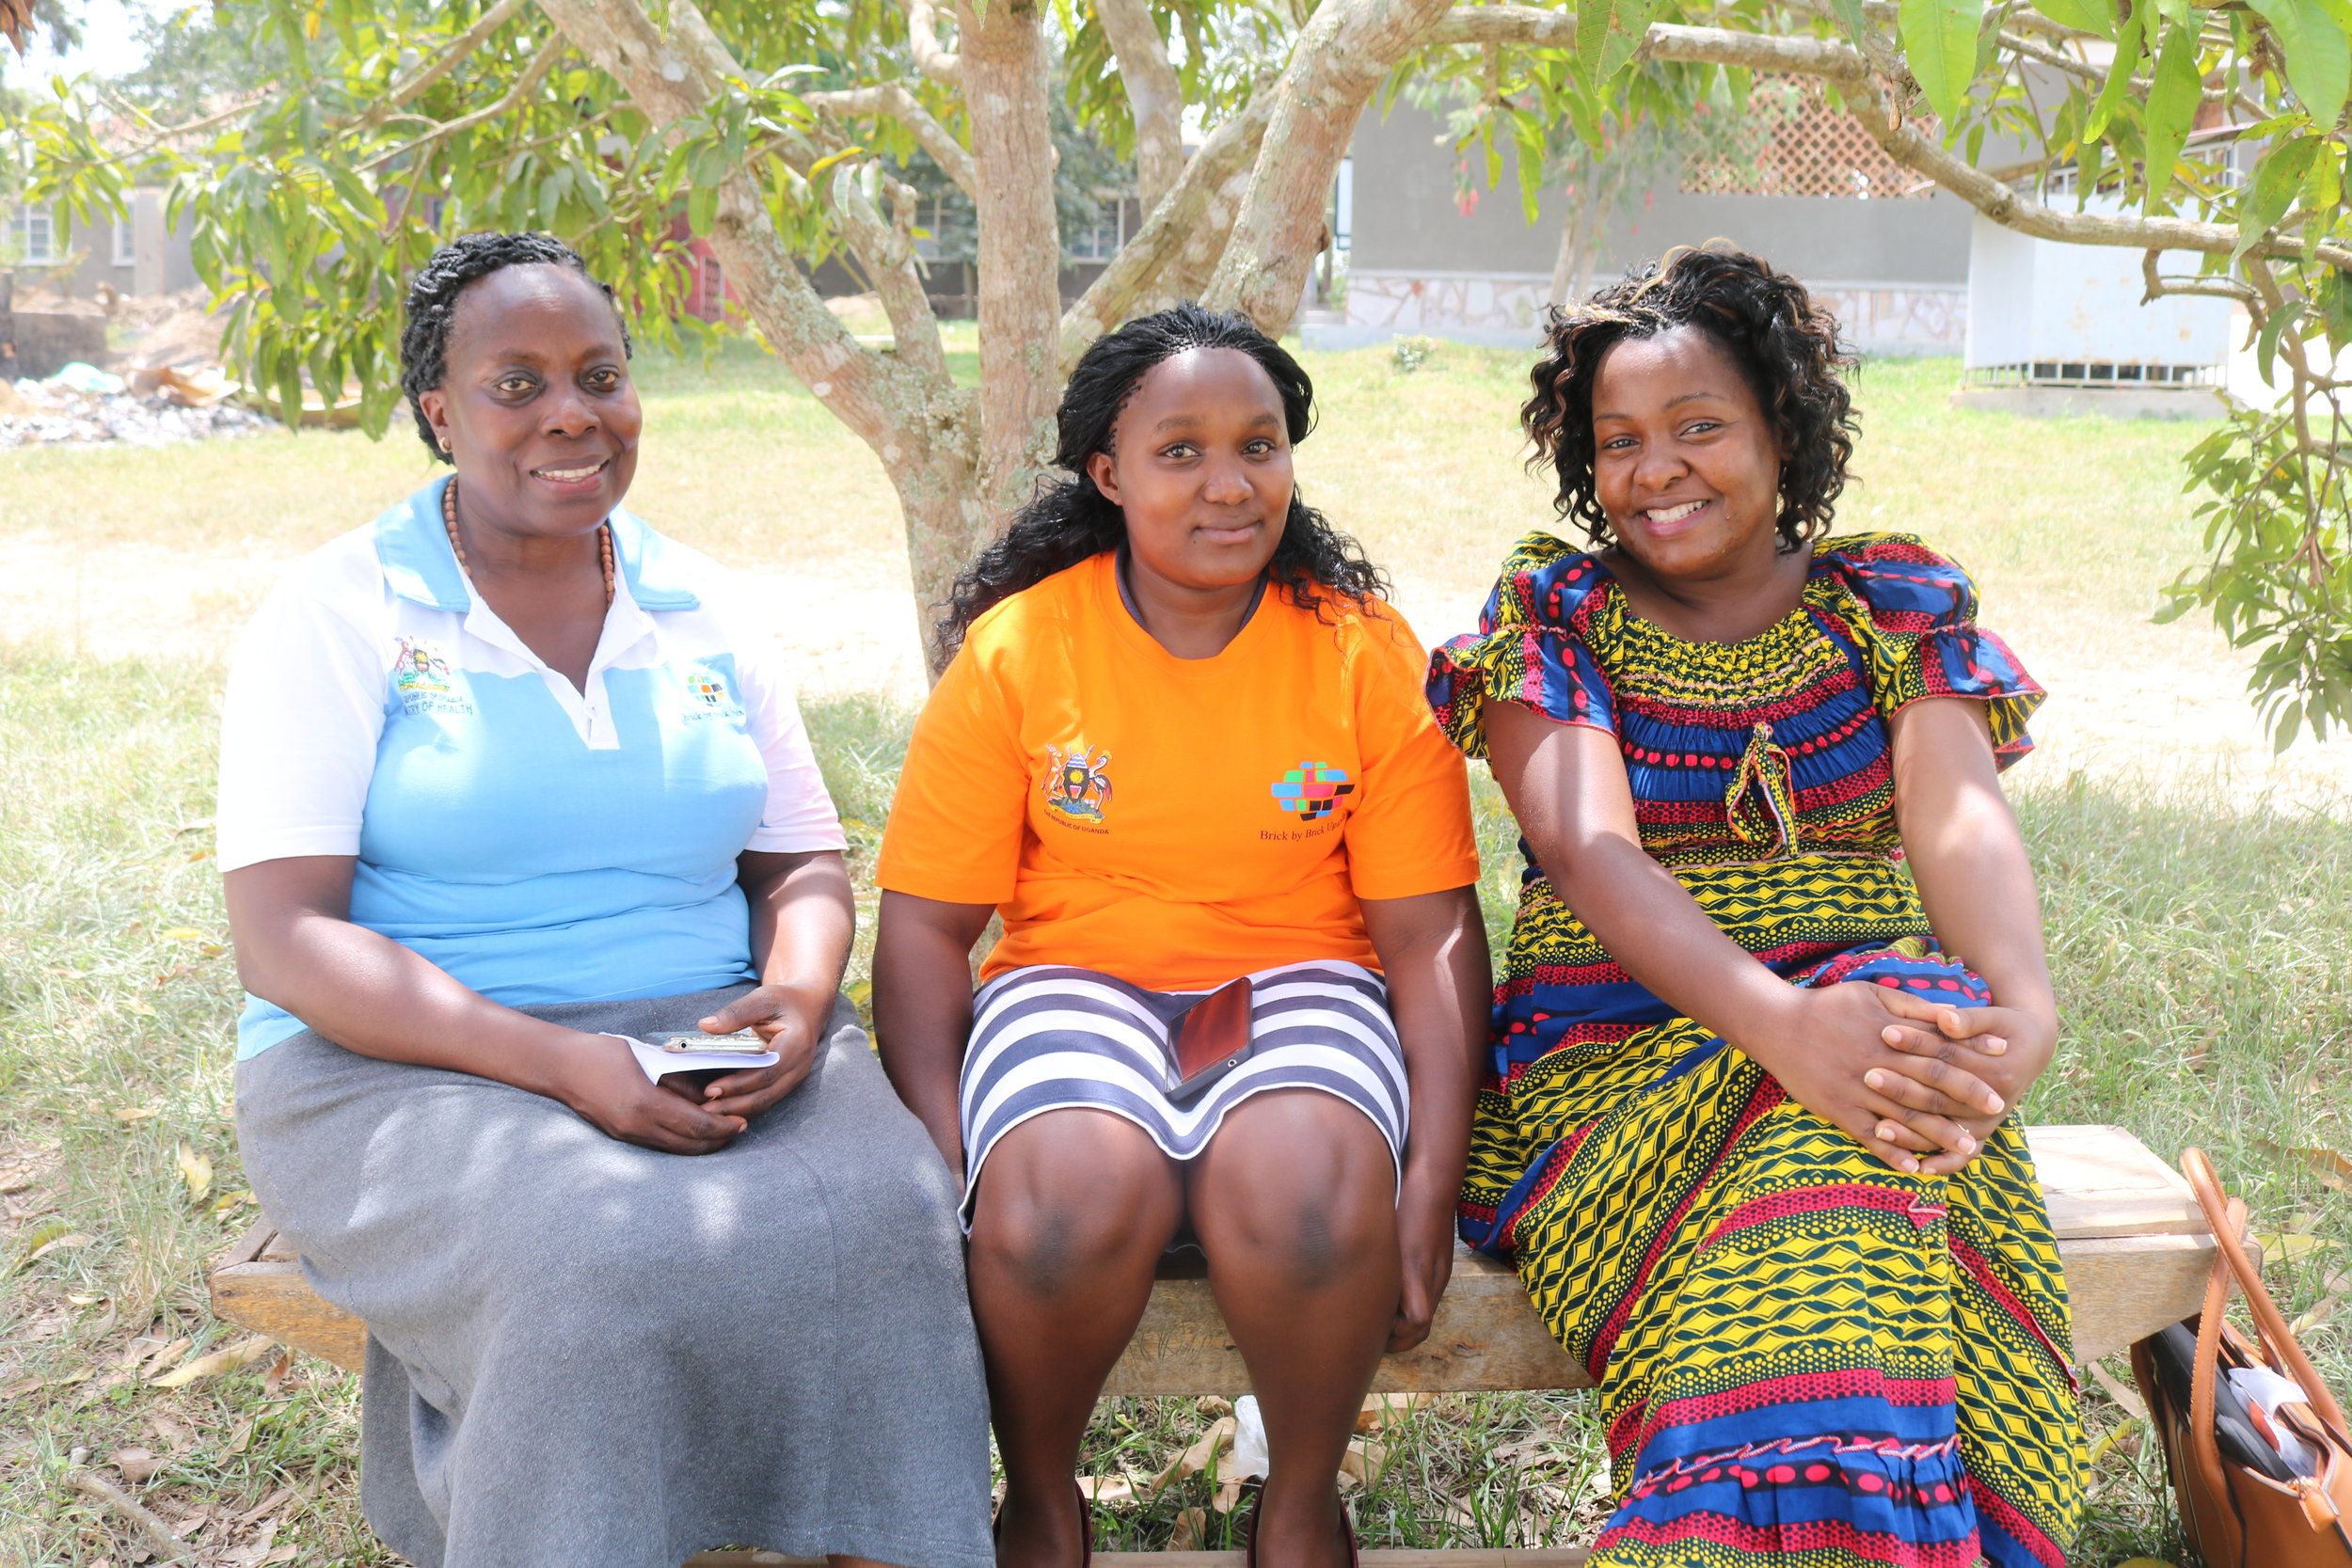 BAMA Senior Midwife Assumpta Mubiru, Linda, a local midwife and Dr. Eleanor Nakintu